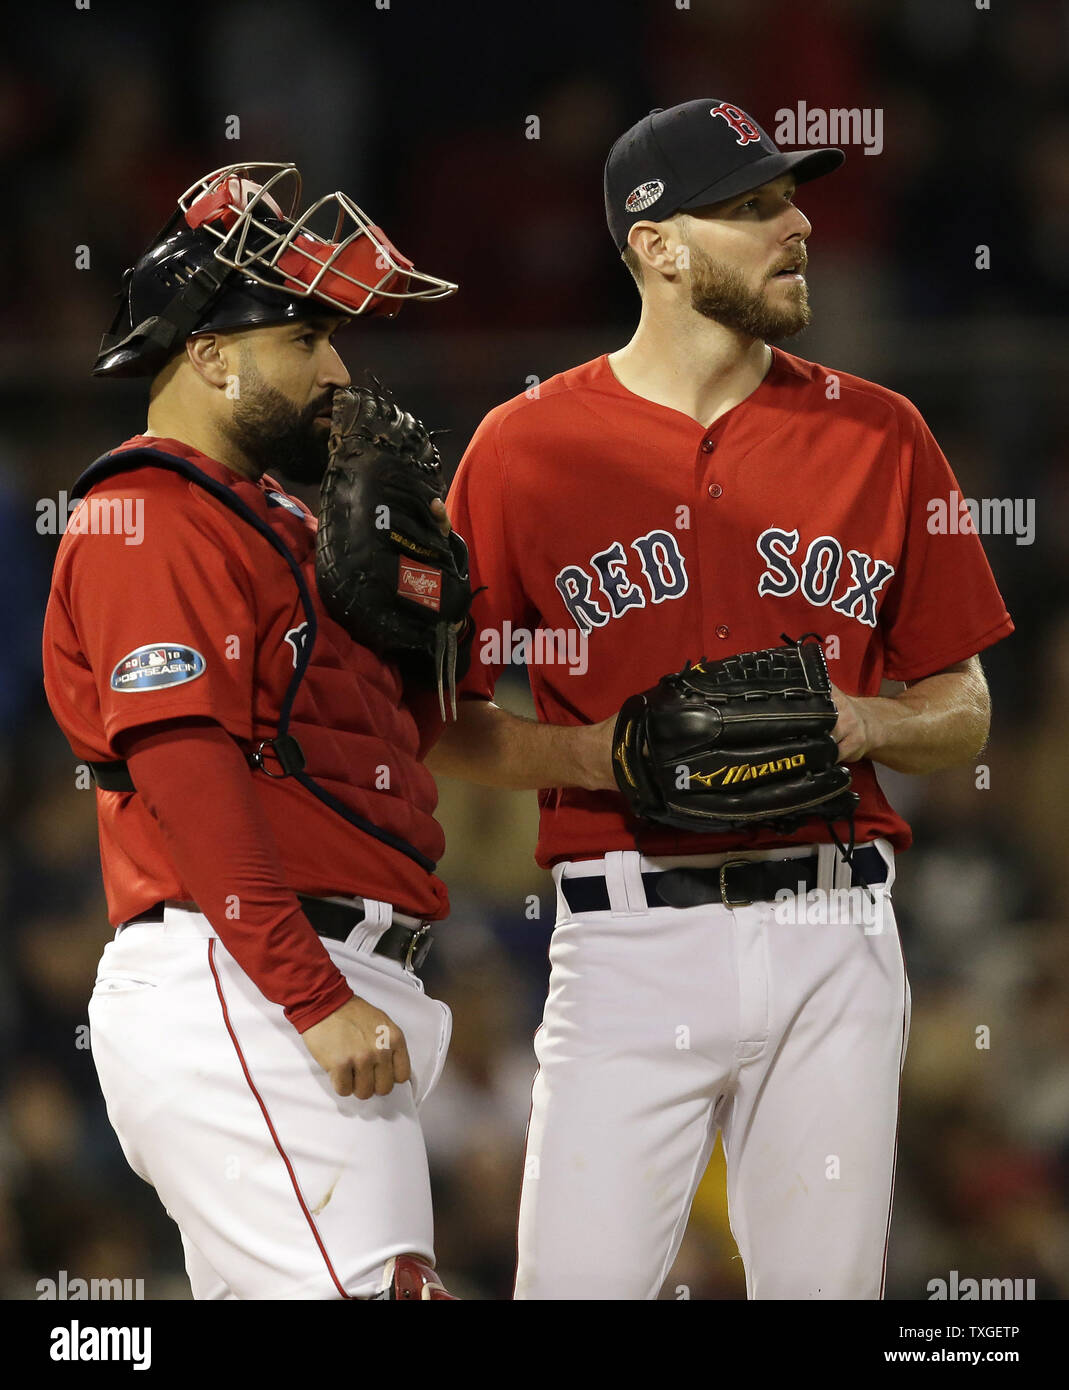 Boston Red Sox pitcher Chris Sale (R) and catcher Sandy Leon